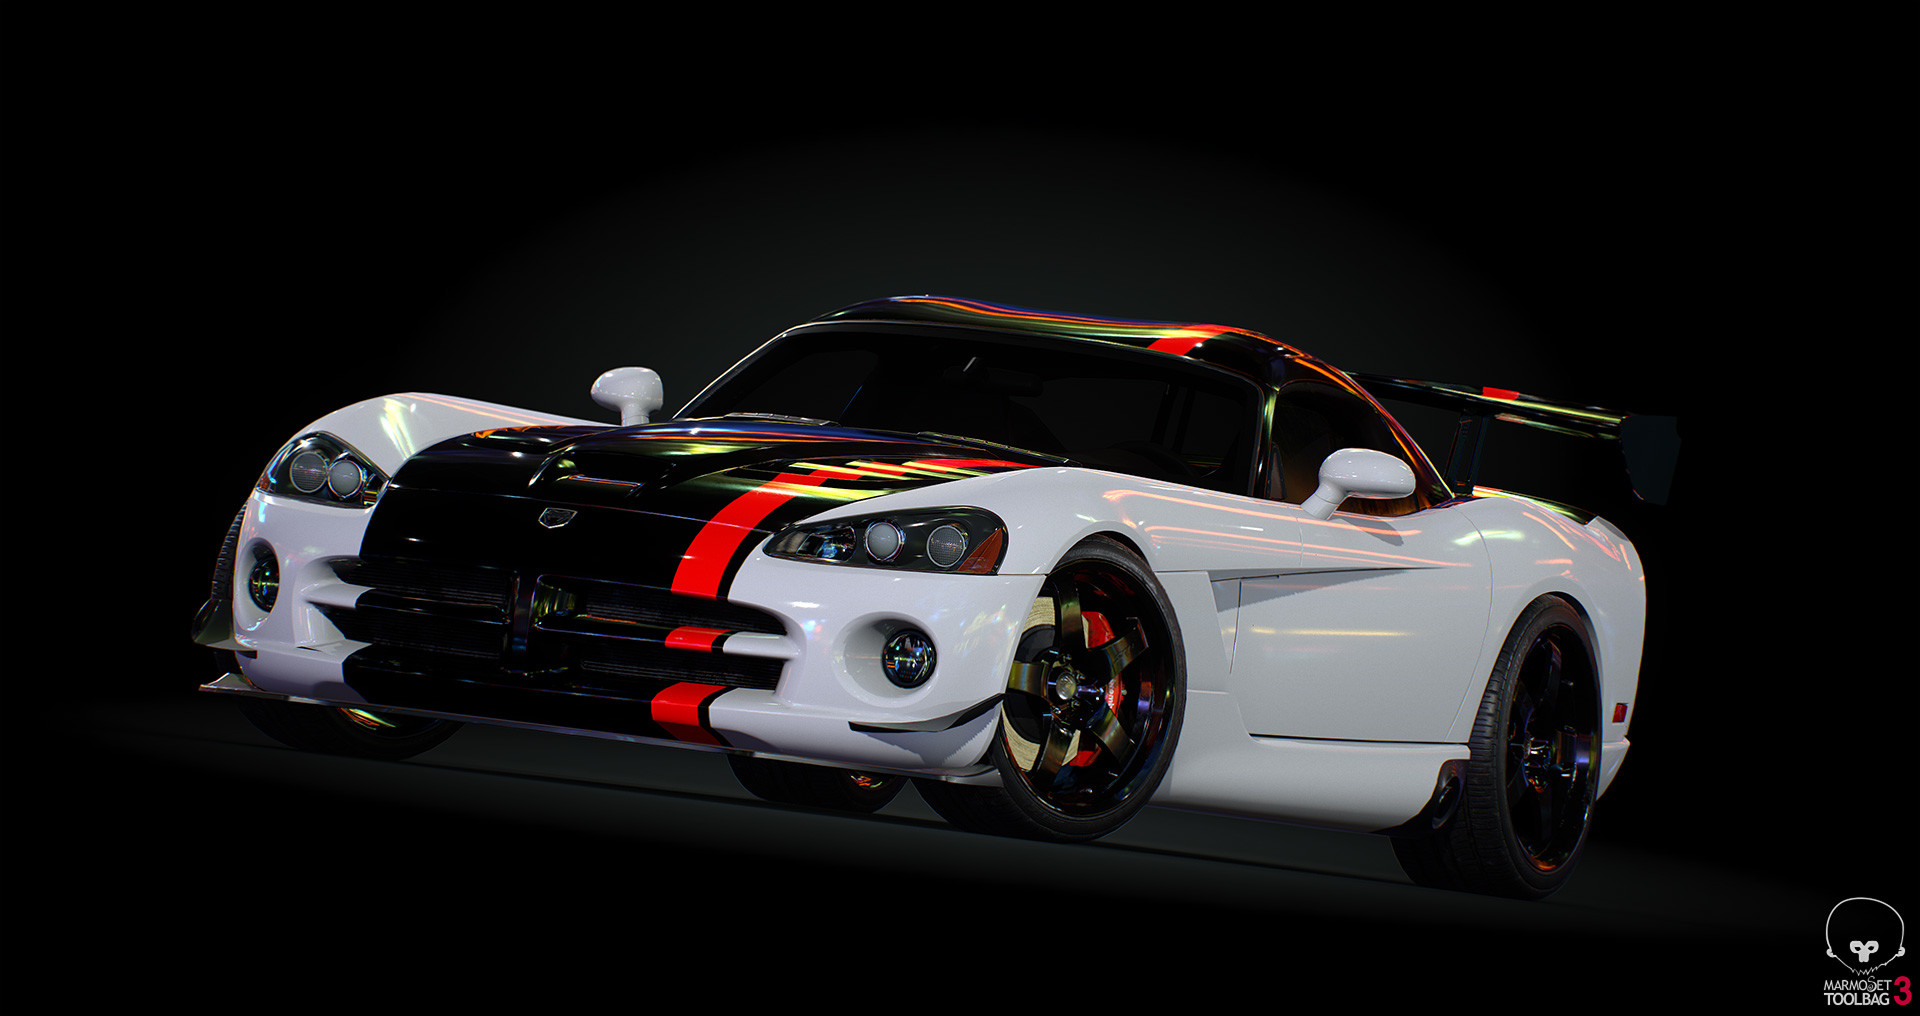 David letondor dodgeviper srt10 david letondor v1